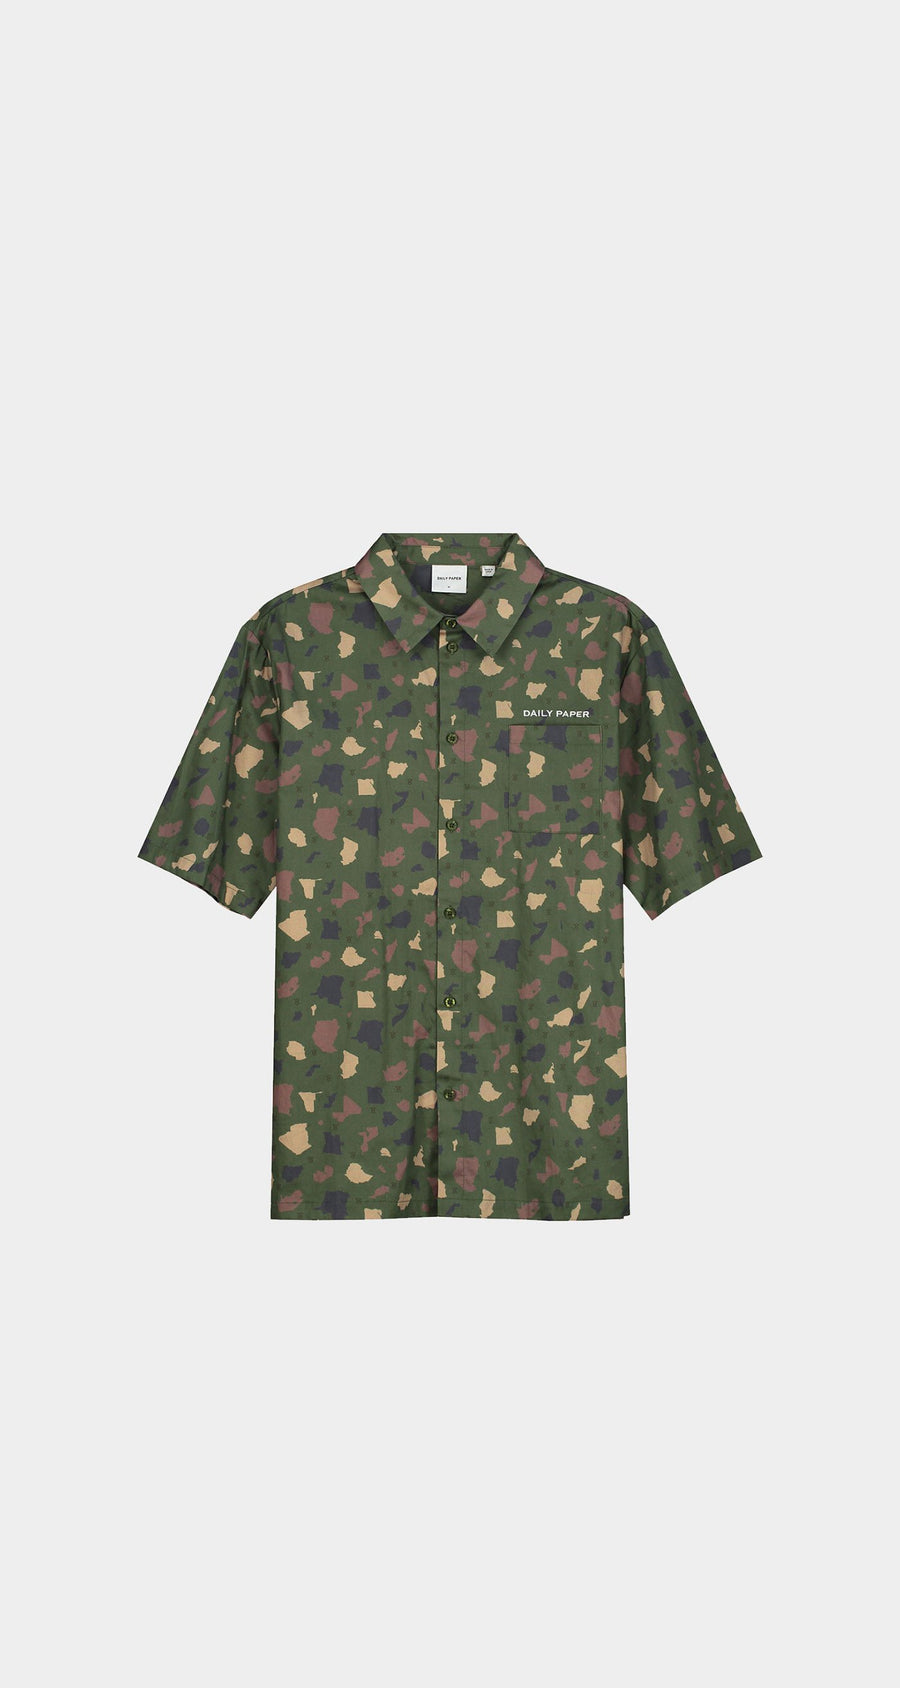 Daily Paper - Green Camo Recomo Shirt - Men Front